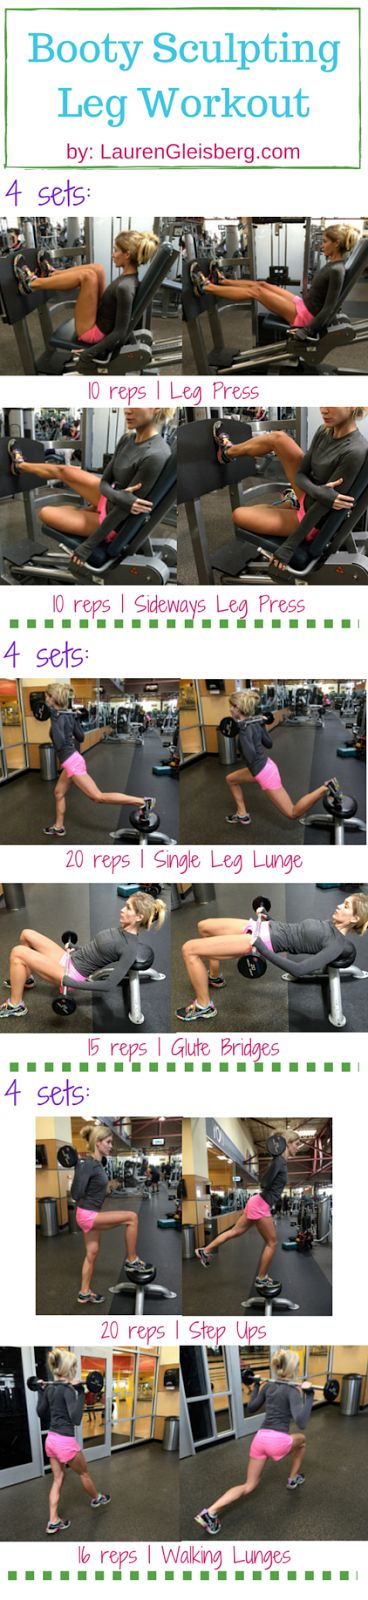 Booty Sculpting Leg Workout | Click for the full fitness plan